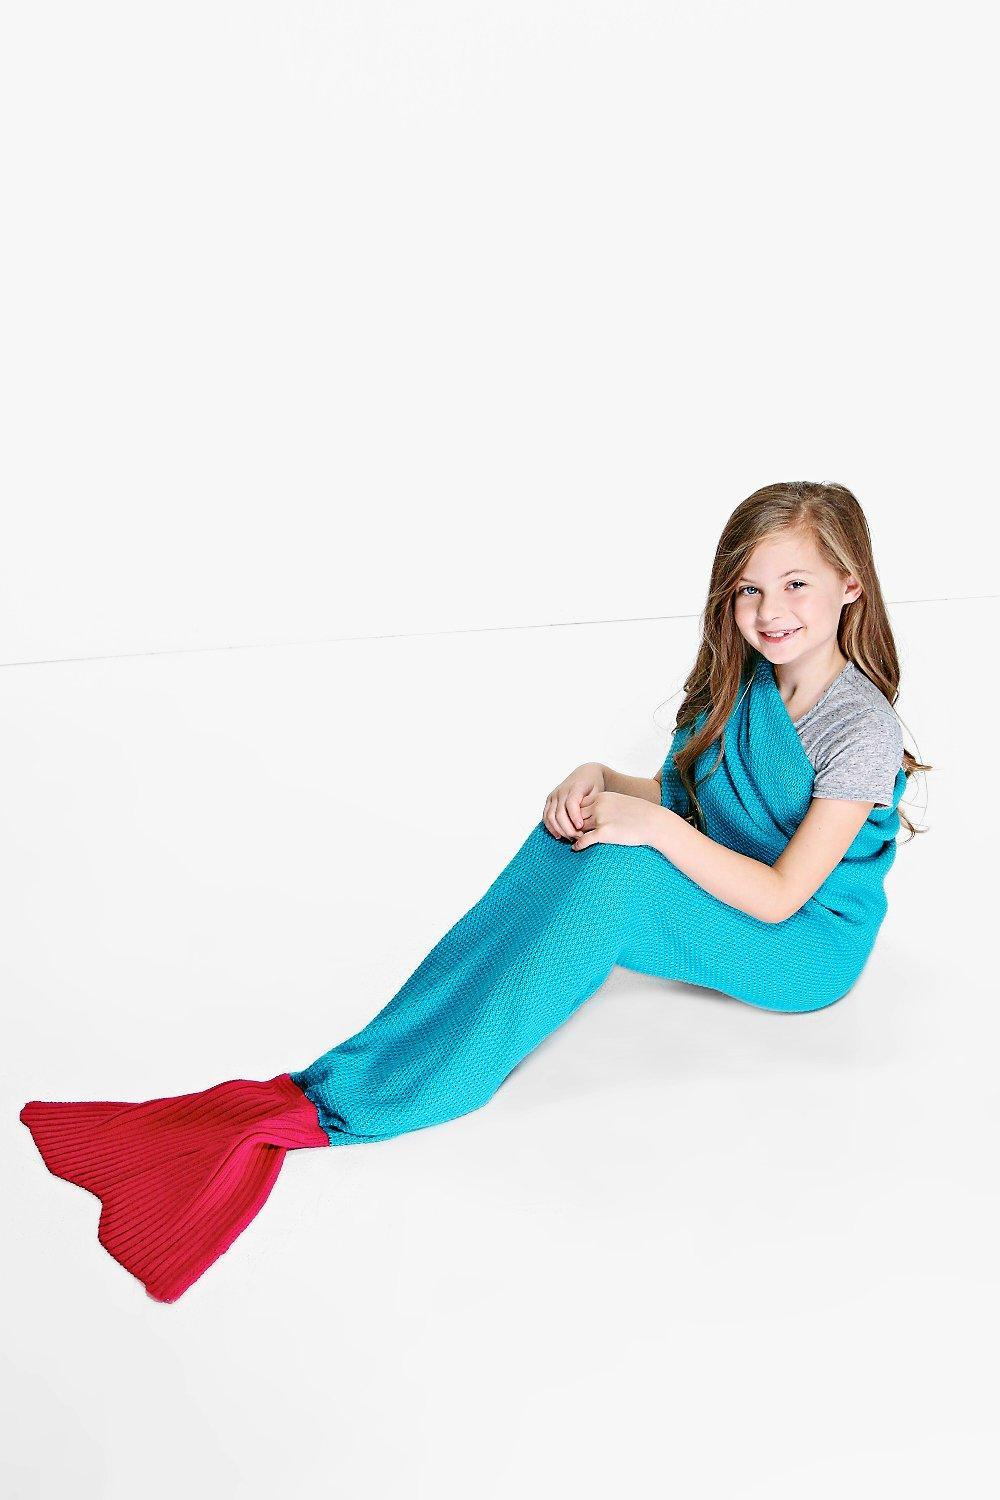 Contrast Mermaid Tail Blanket - aqua - Girls Contr